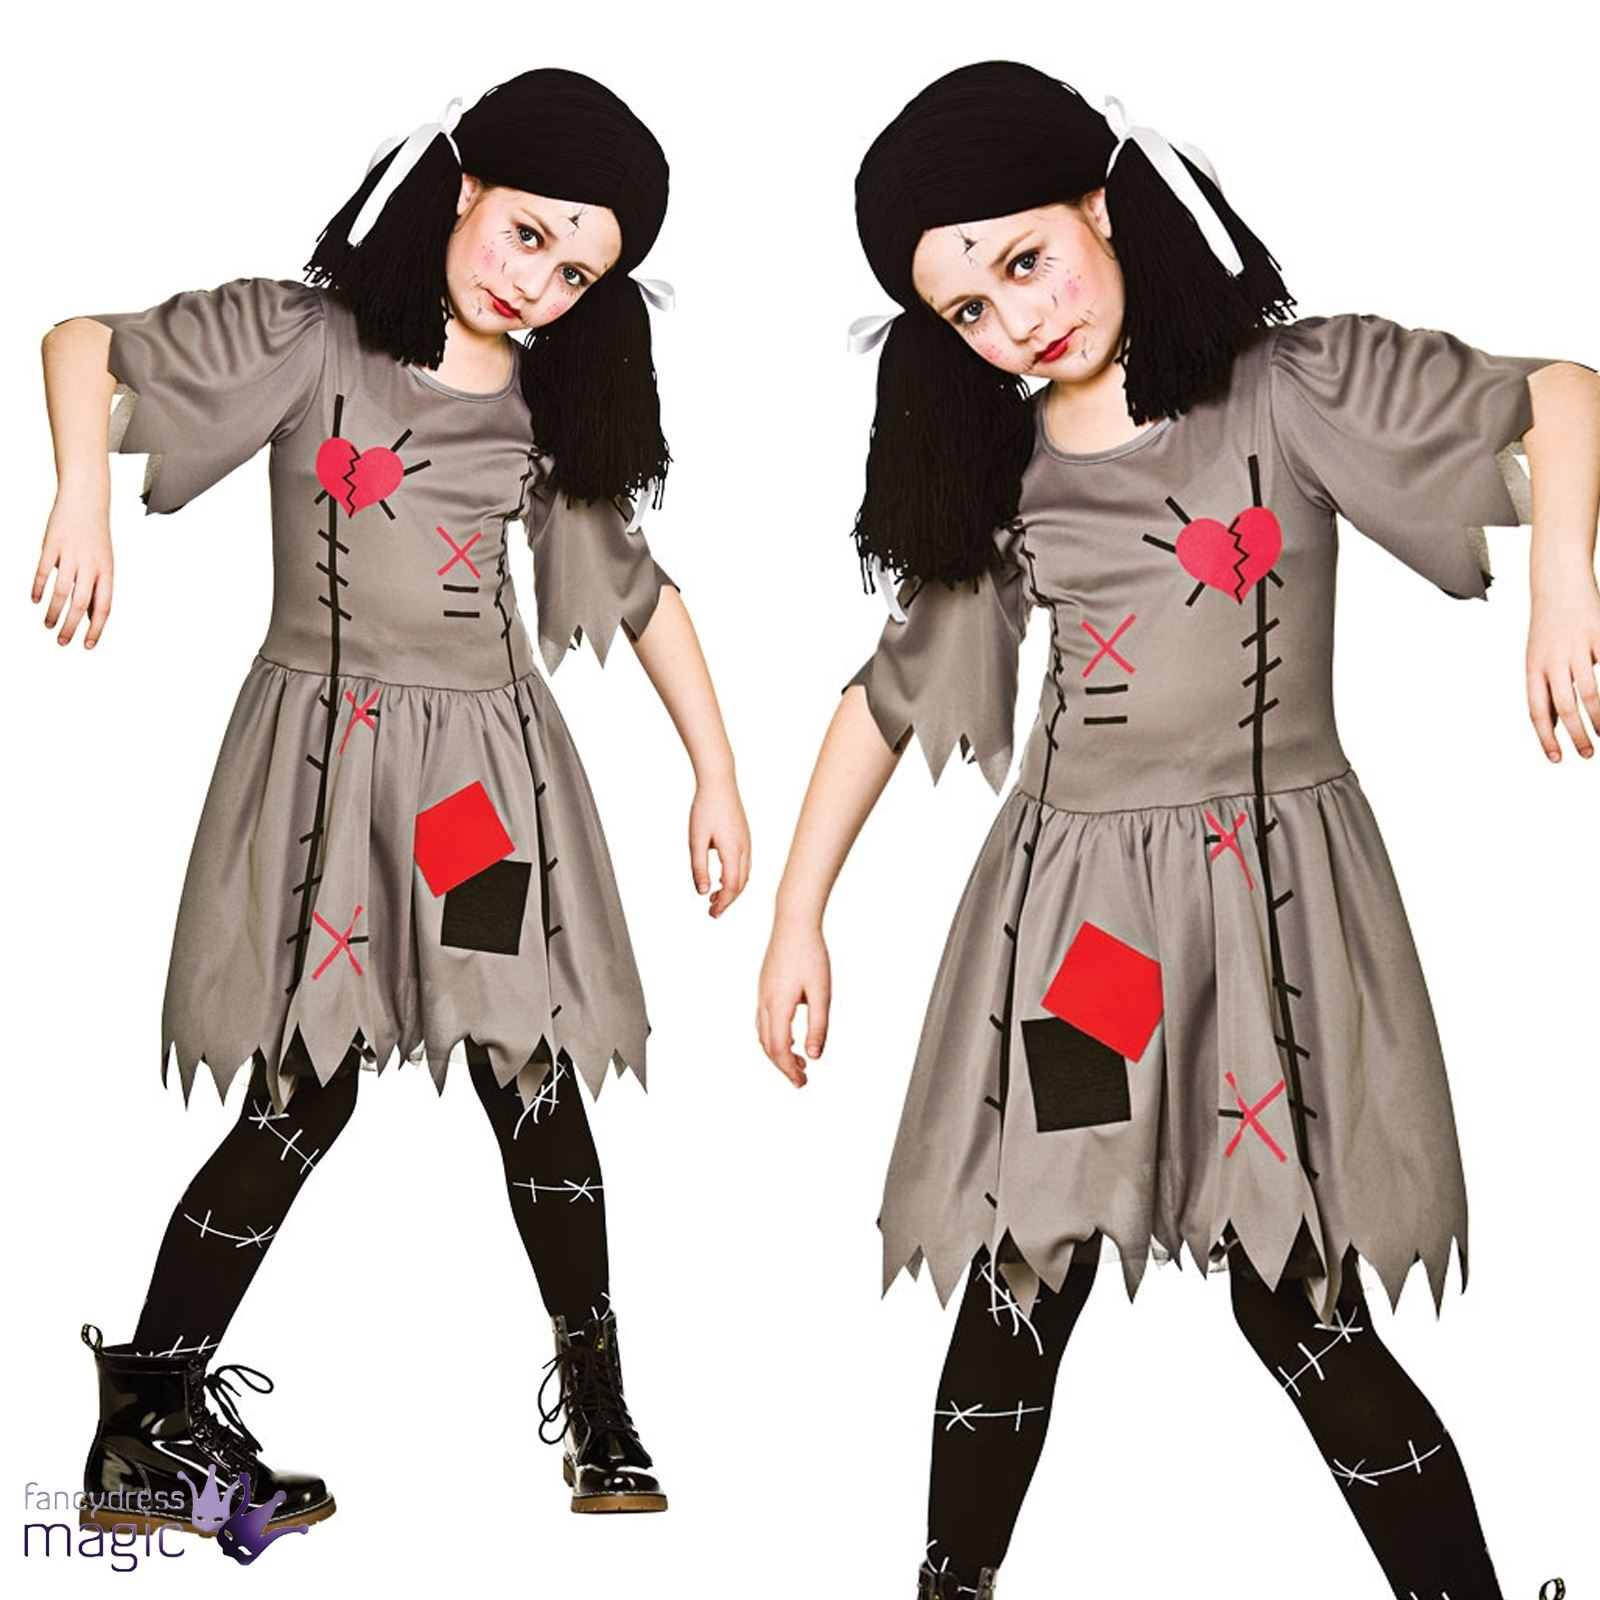 kinder m dchen bizarre voodoo evil puppe puppe halloween kost m kleid outfit ebay. Black Bedroom Furniture Sets. Home Design Ideas